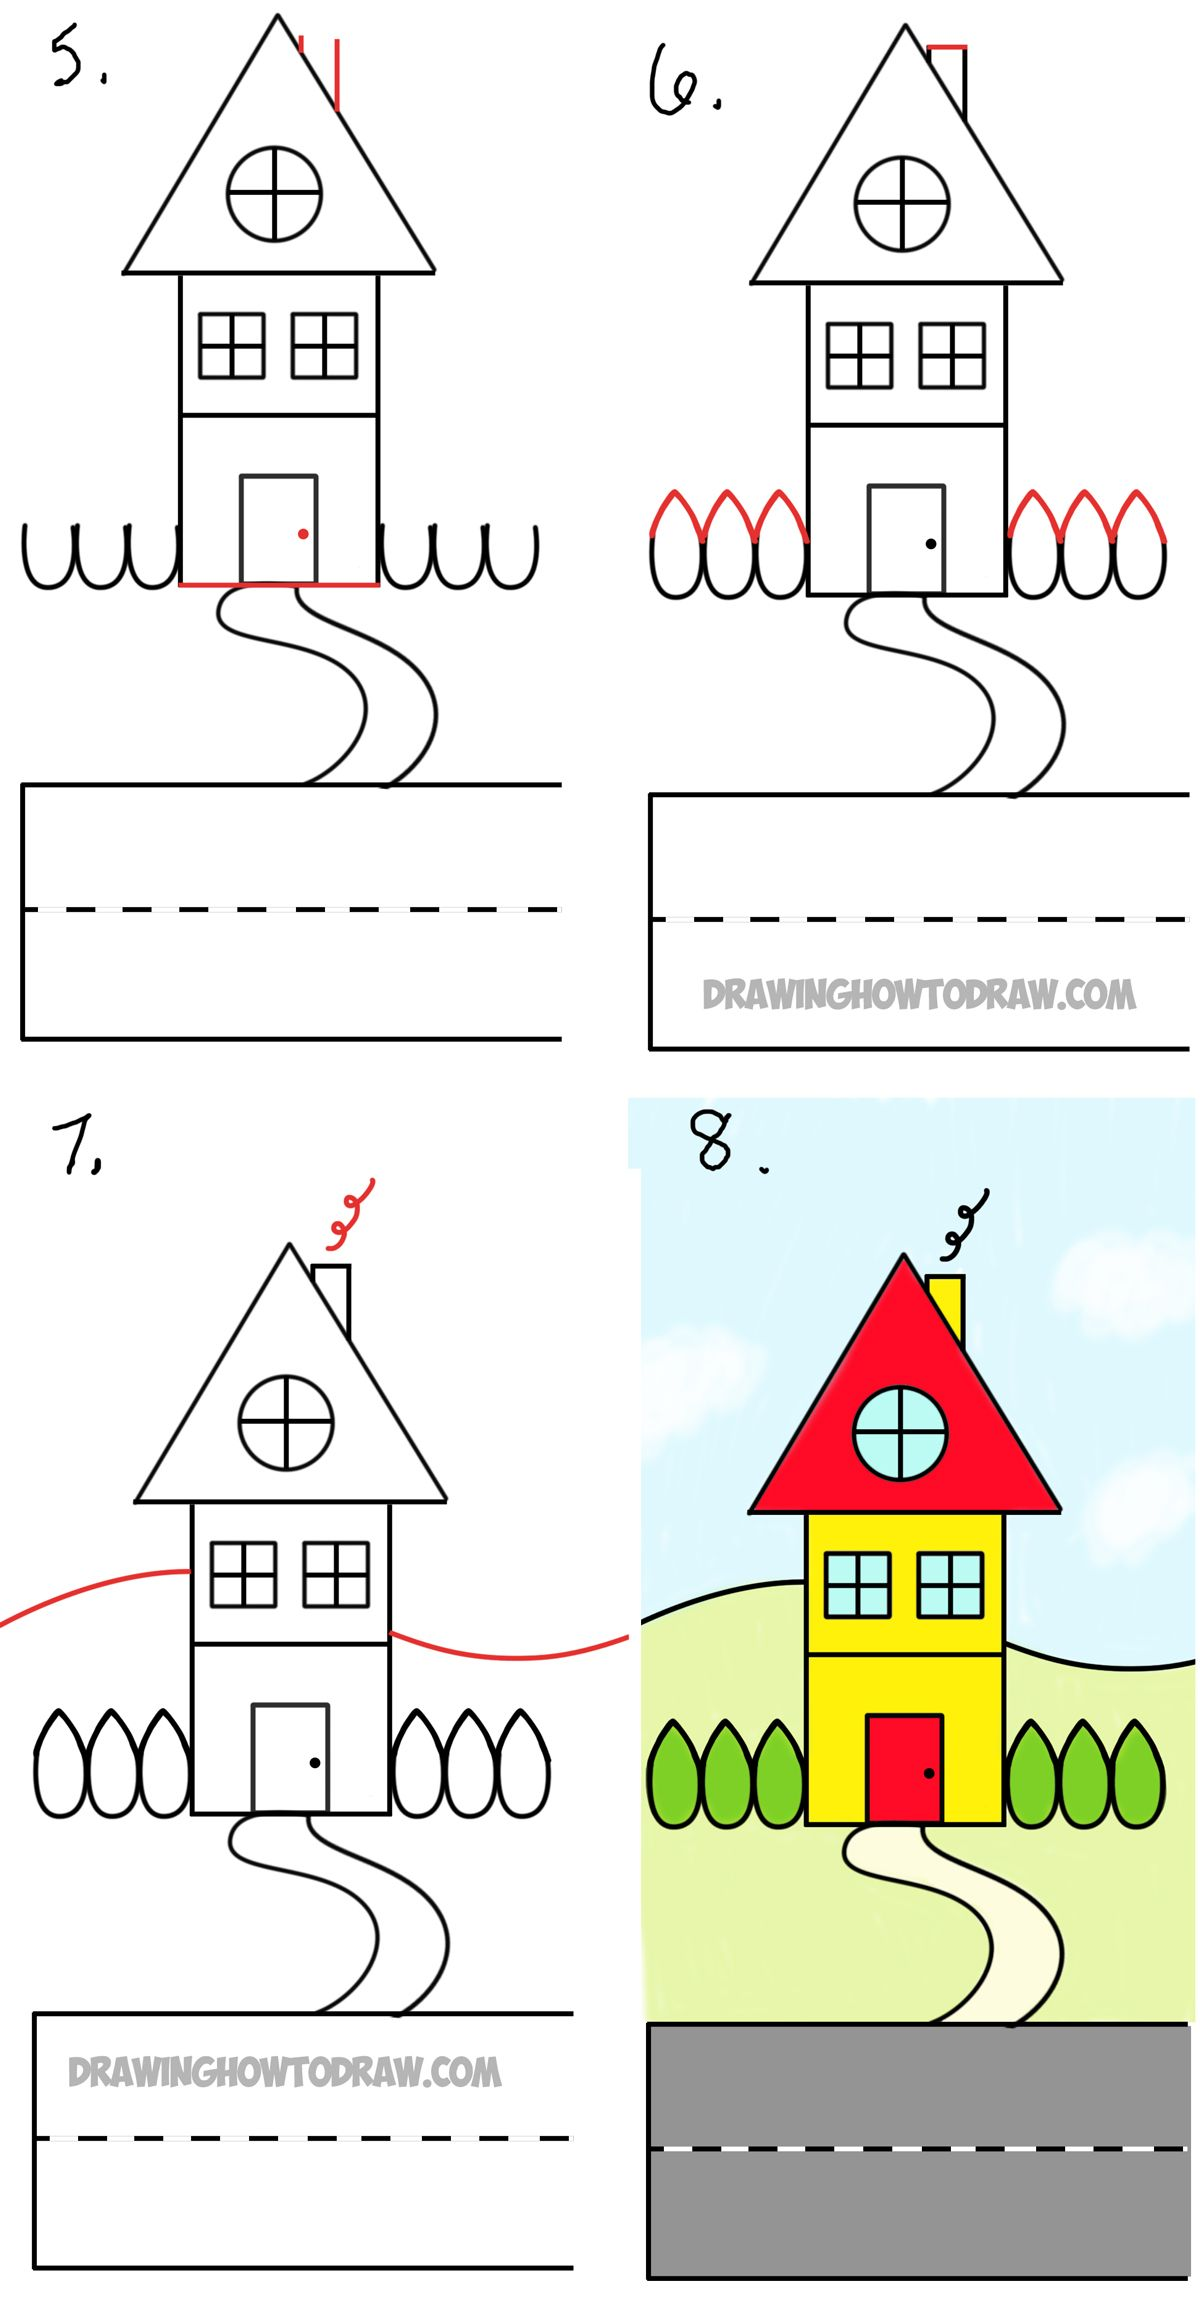 drawing a cartoon house from the word house word toons for